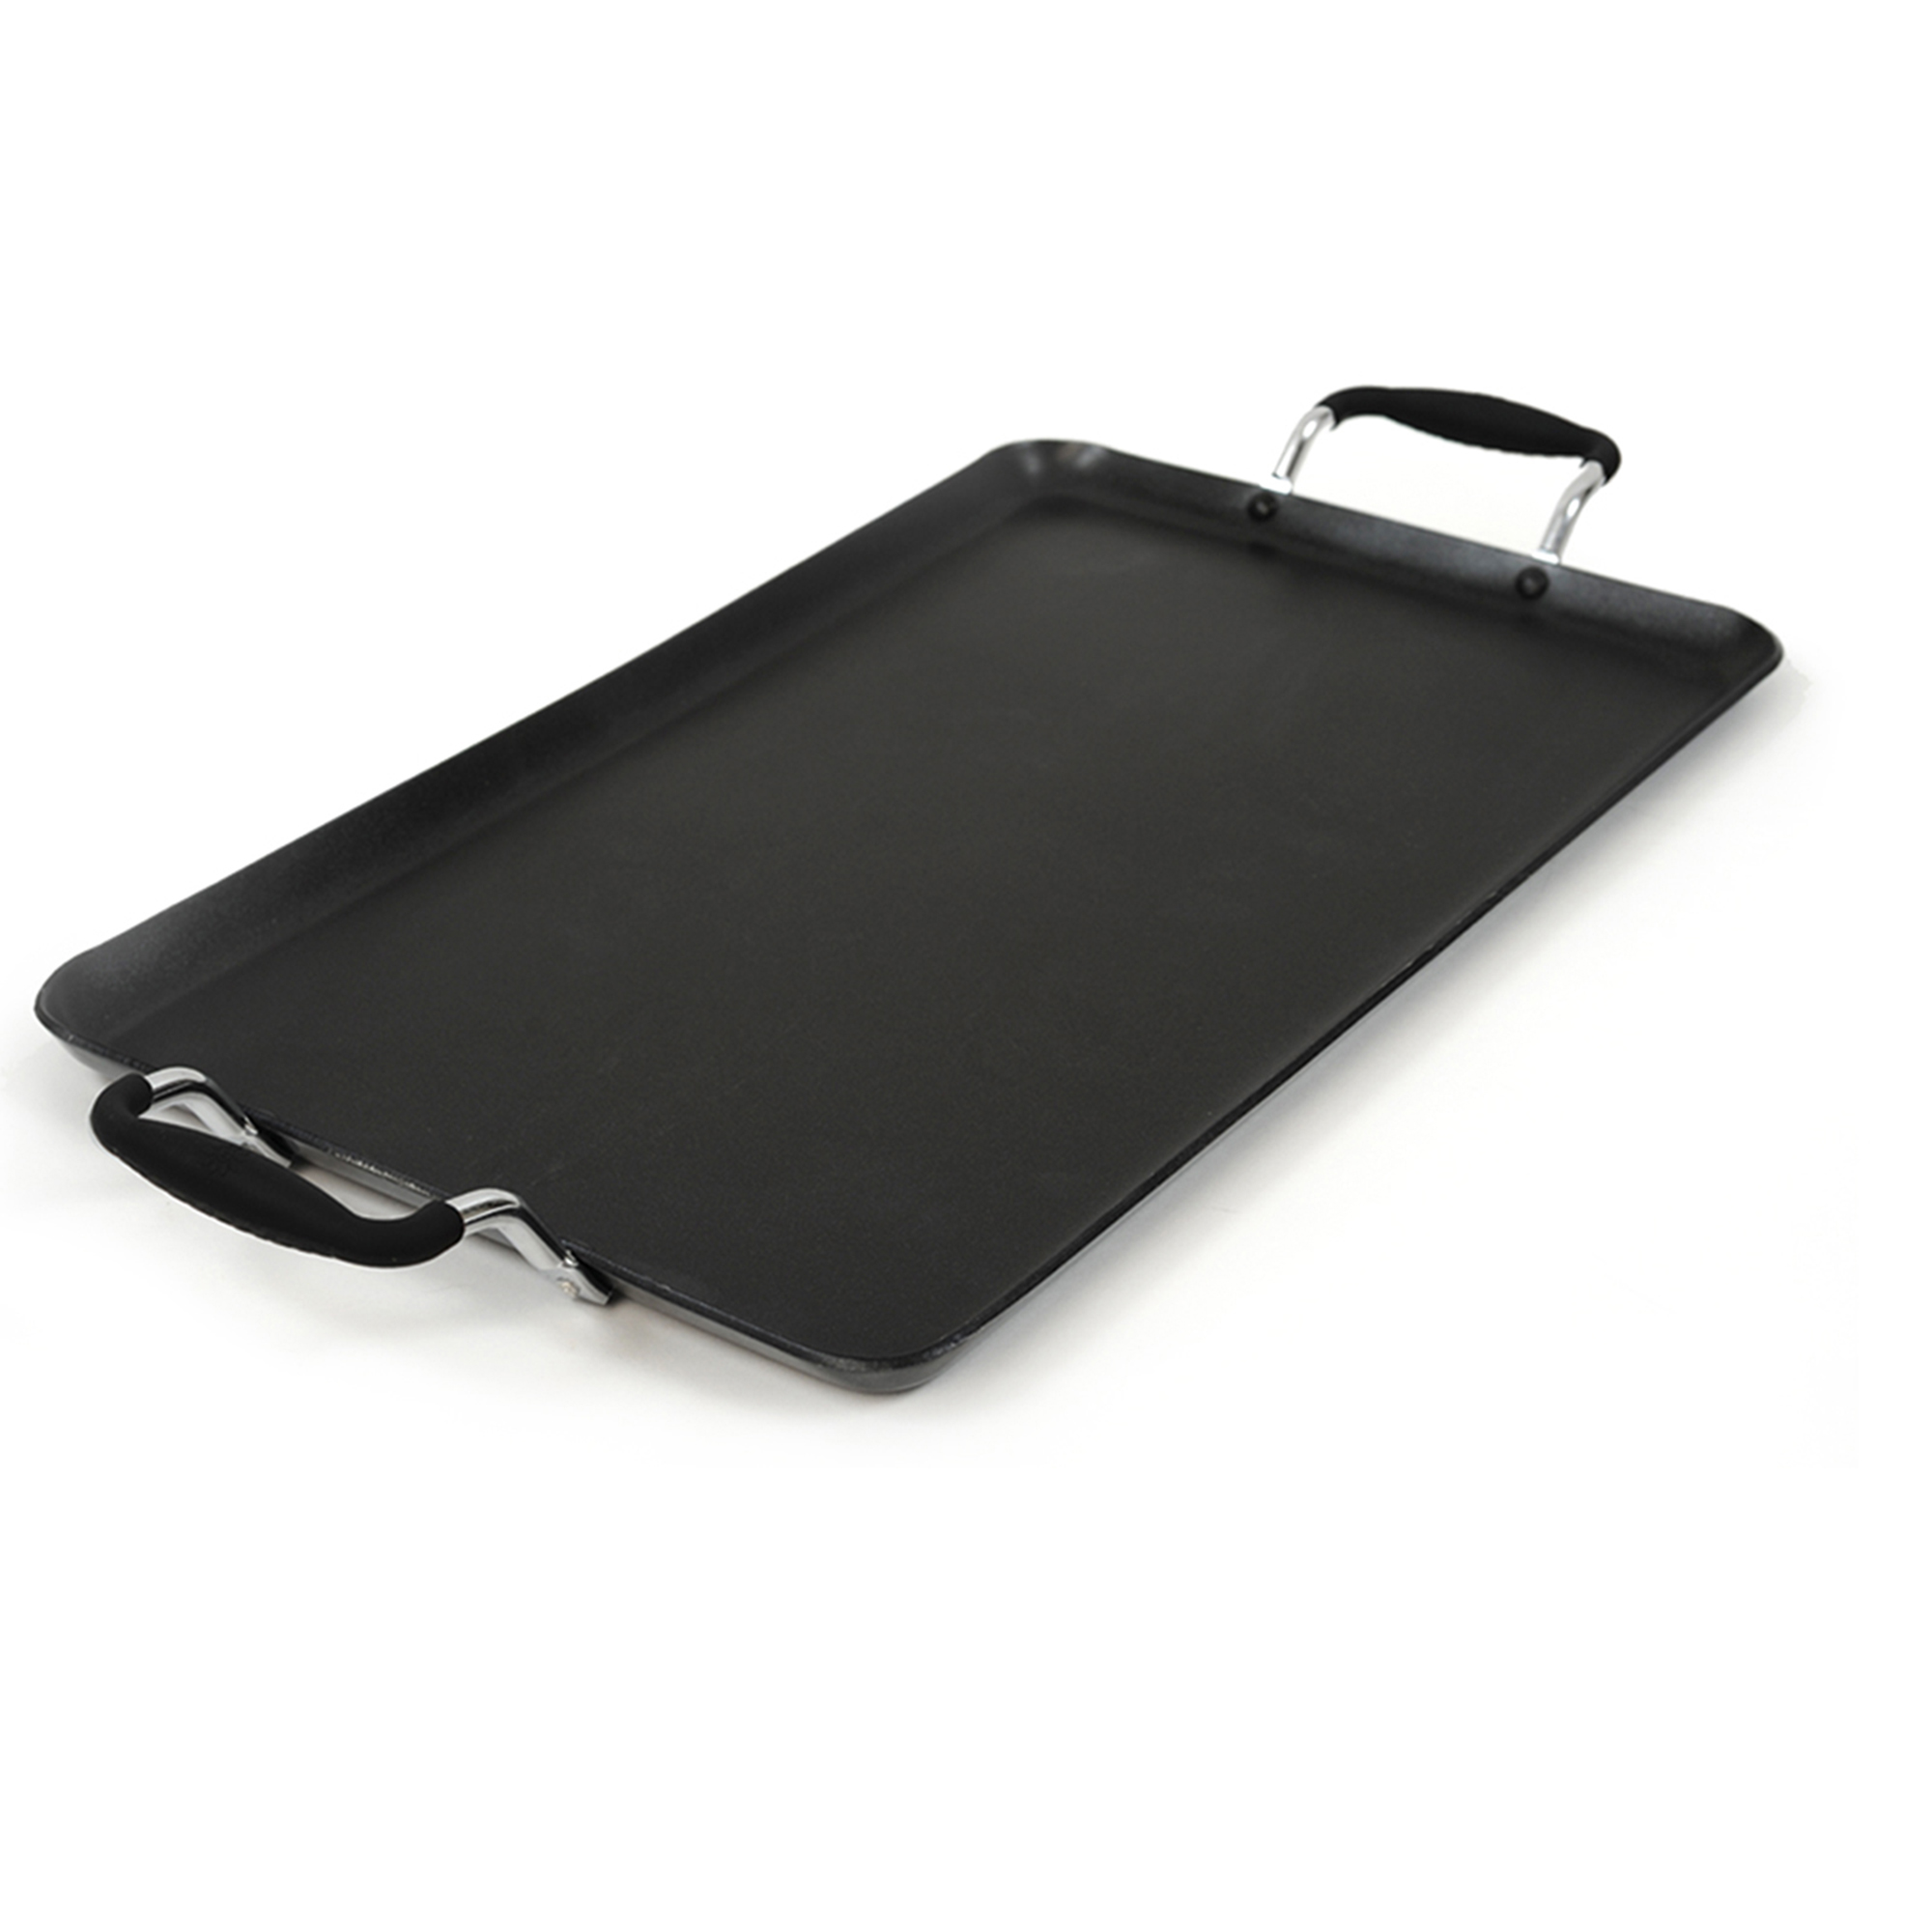 ECOLUTION EABK3218 BLACK ARTISTRY DOUBLE BURNER GRIDDLE